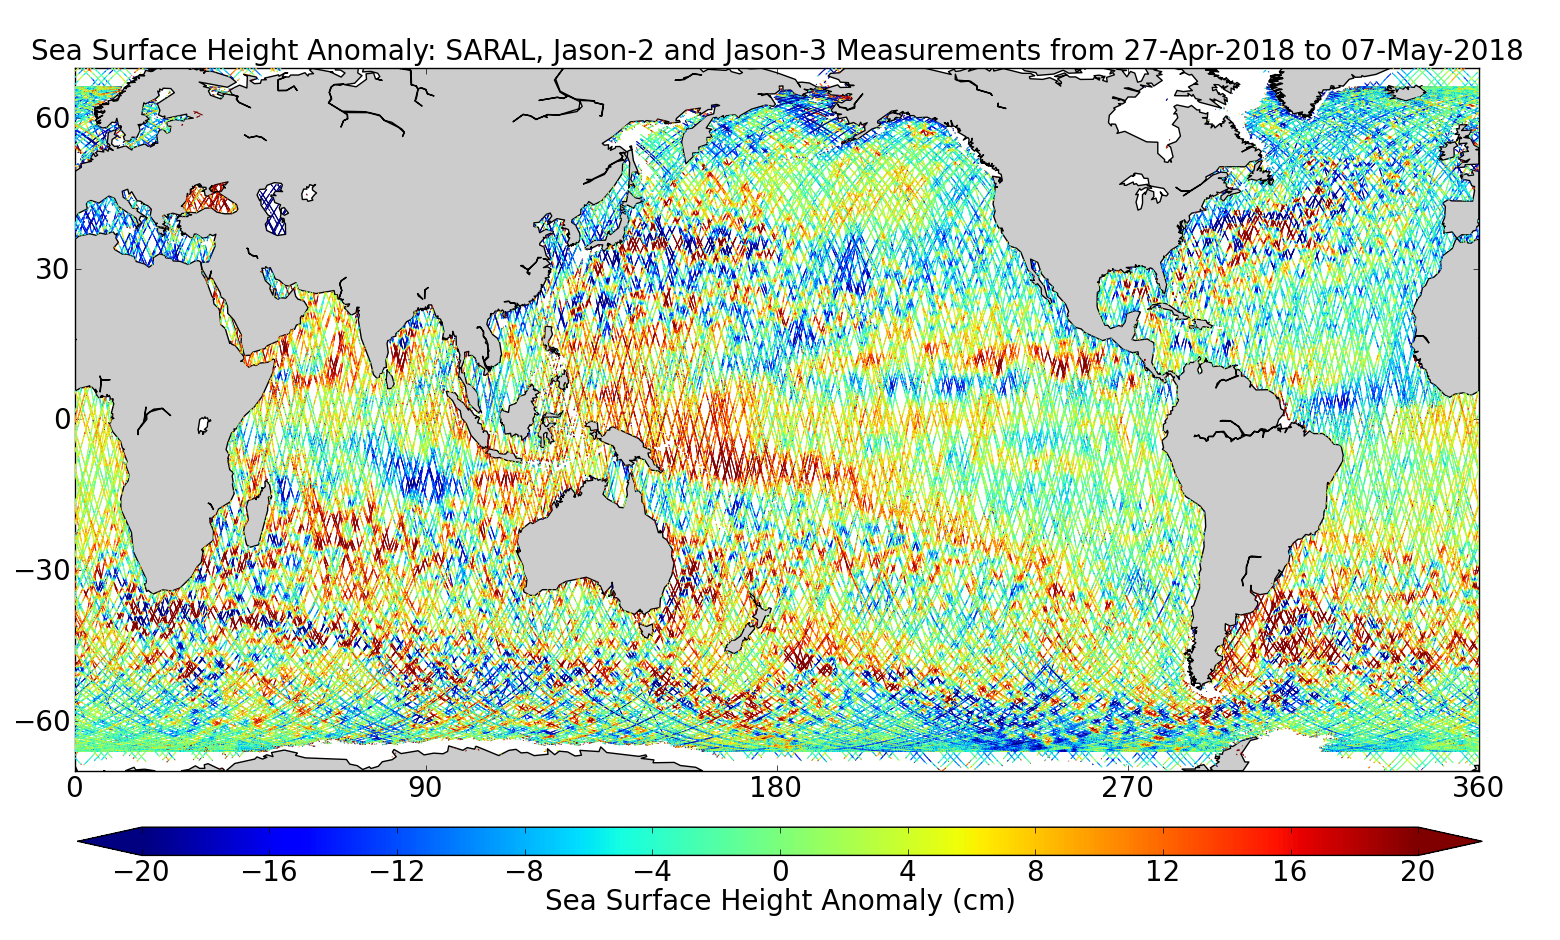 Sea Surface Height Anomaly: SARAL, Jason-2 and Jason-3 Measurements from 27-Apr-2018 to 07-May-2018